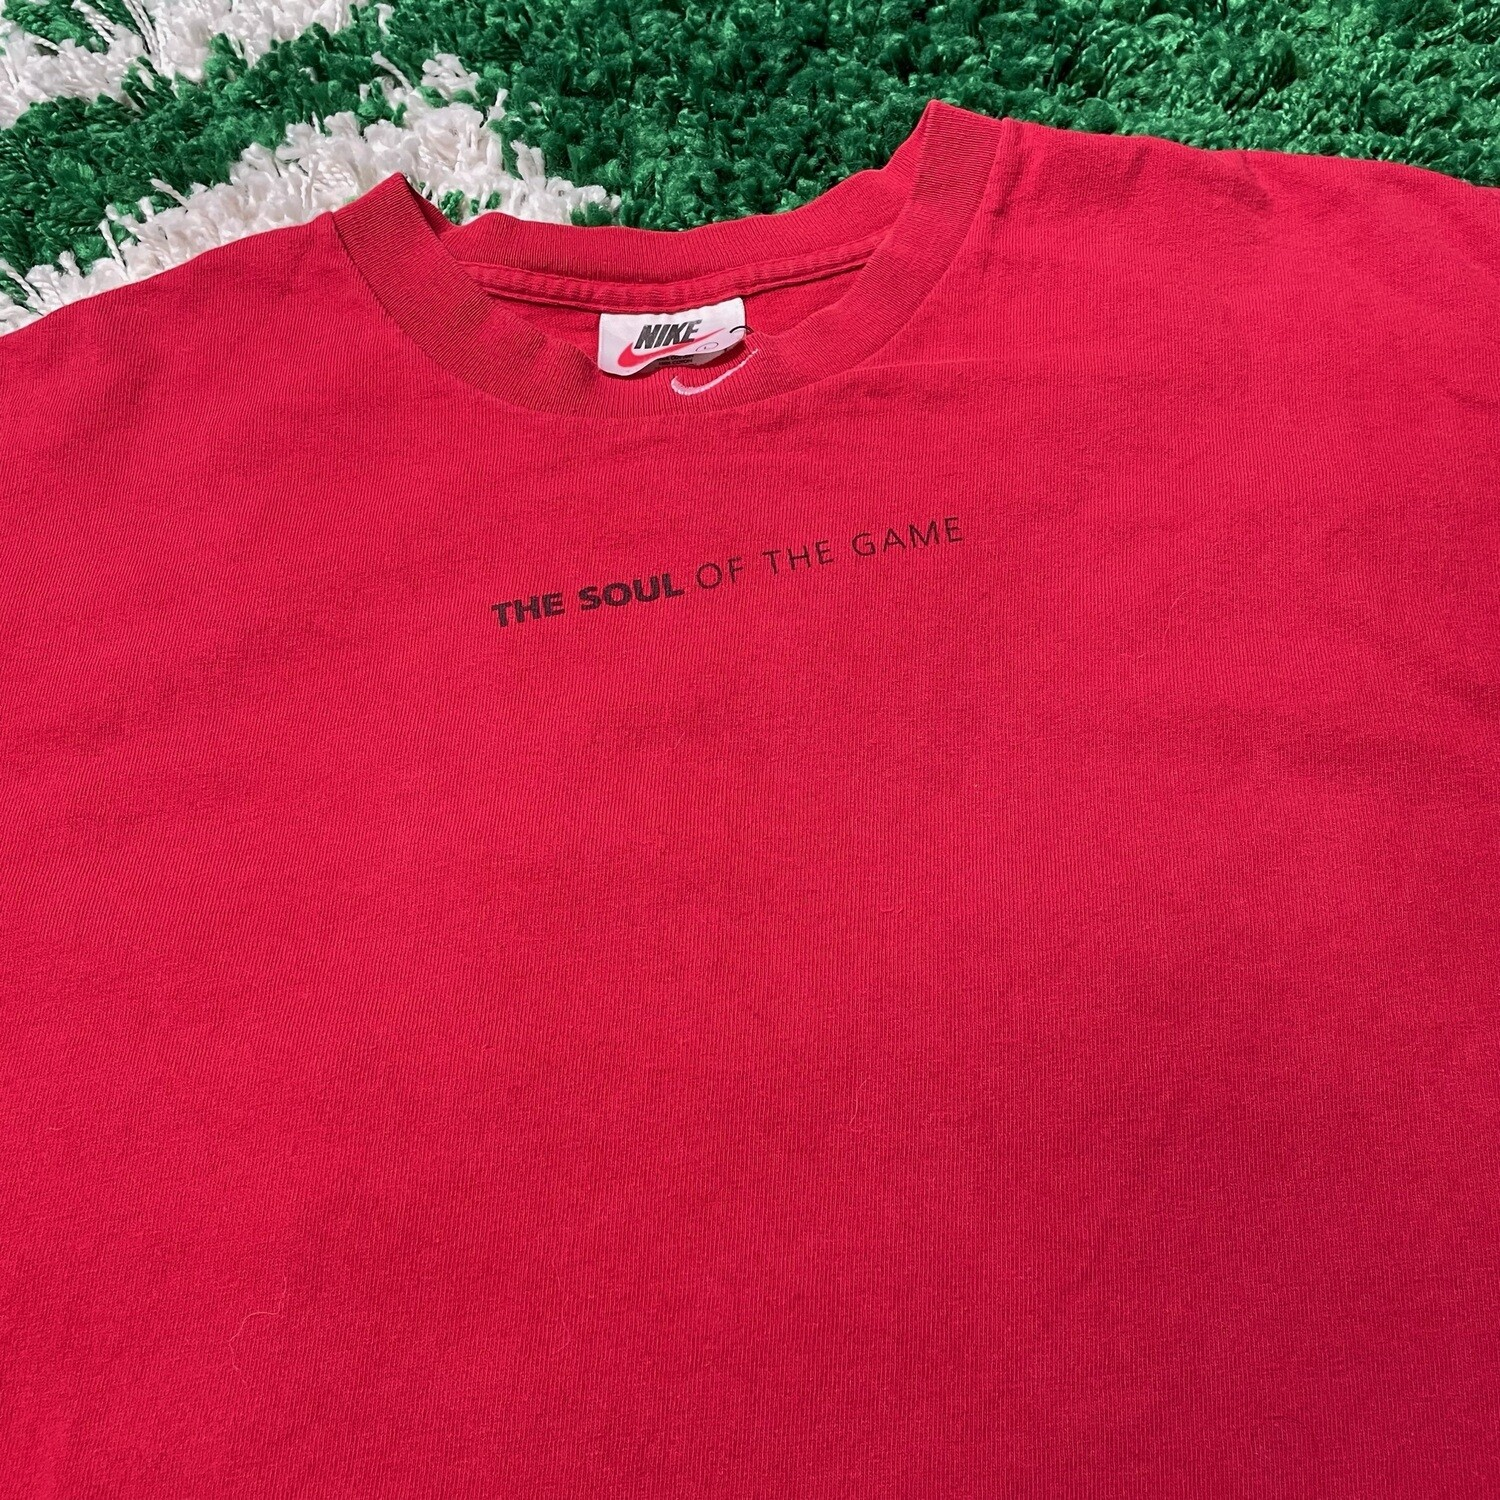 Nike The Soul of the Game Neck Swoosh Tee Size Large